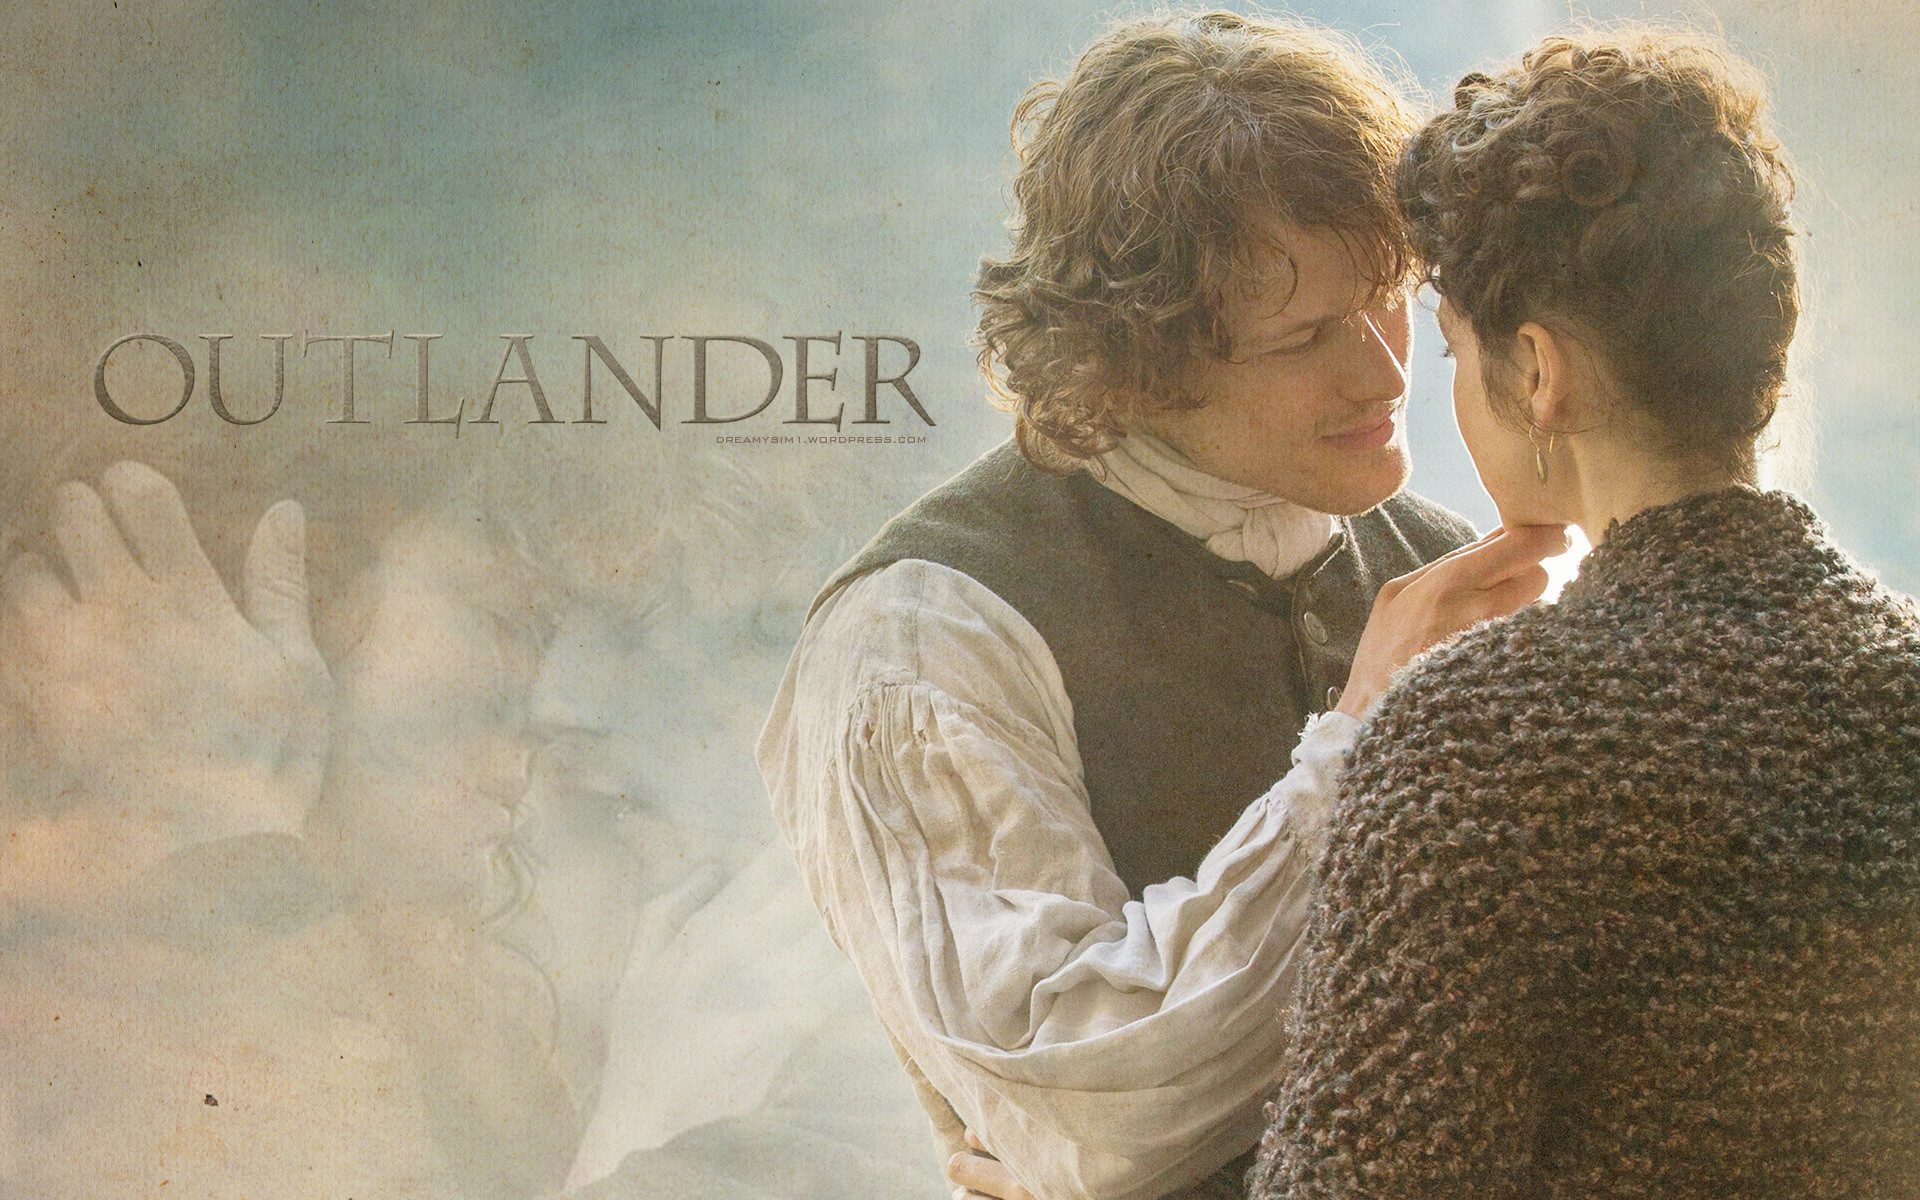 1920x1200 New Jamie & Claire Outlander Wallpaper Made by @DreamySim1 4 comments